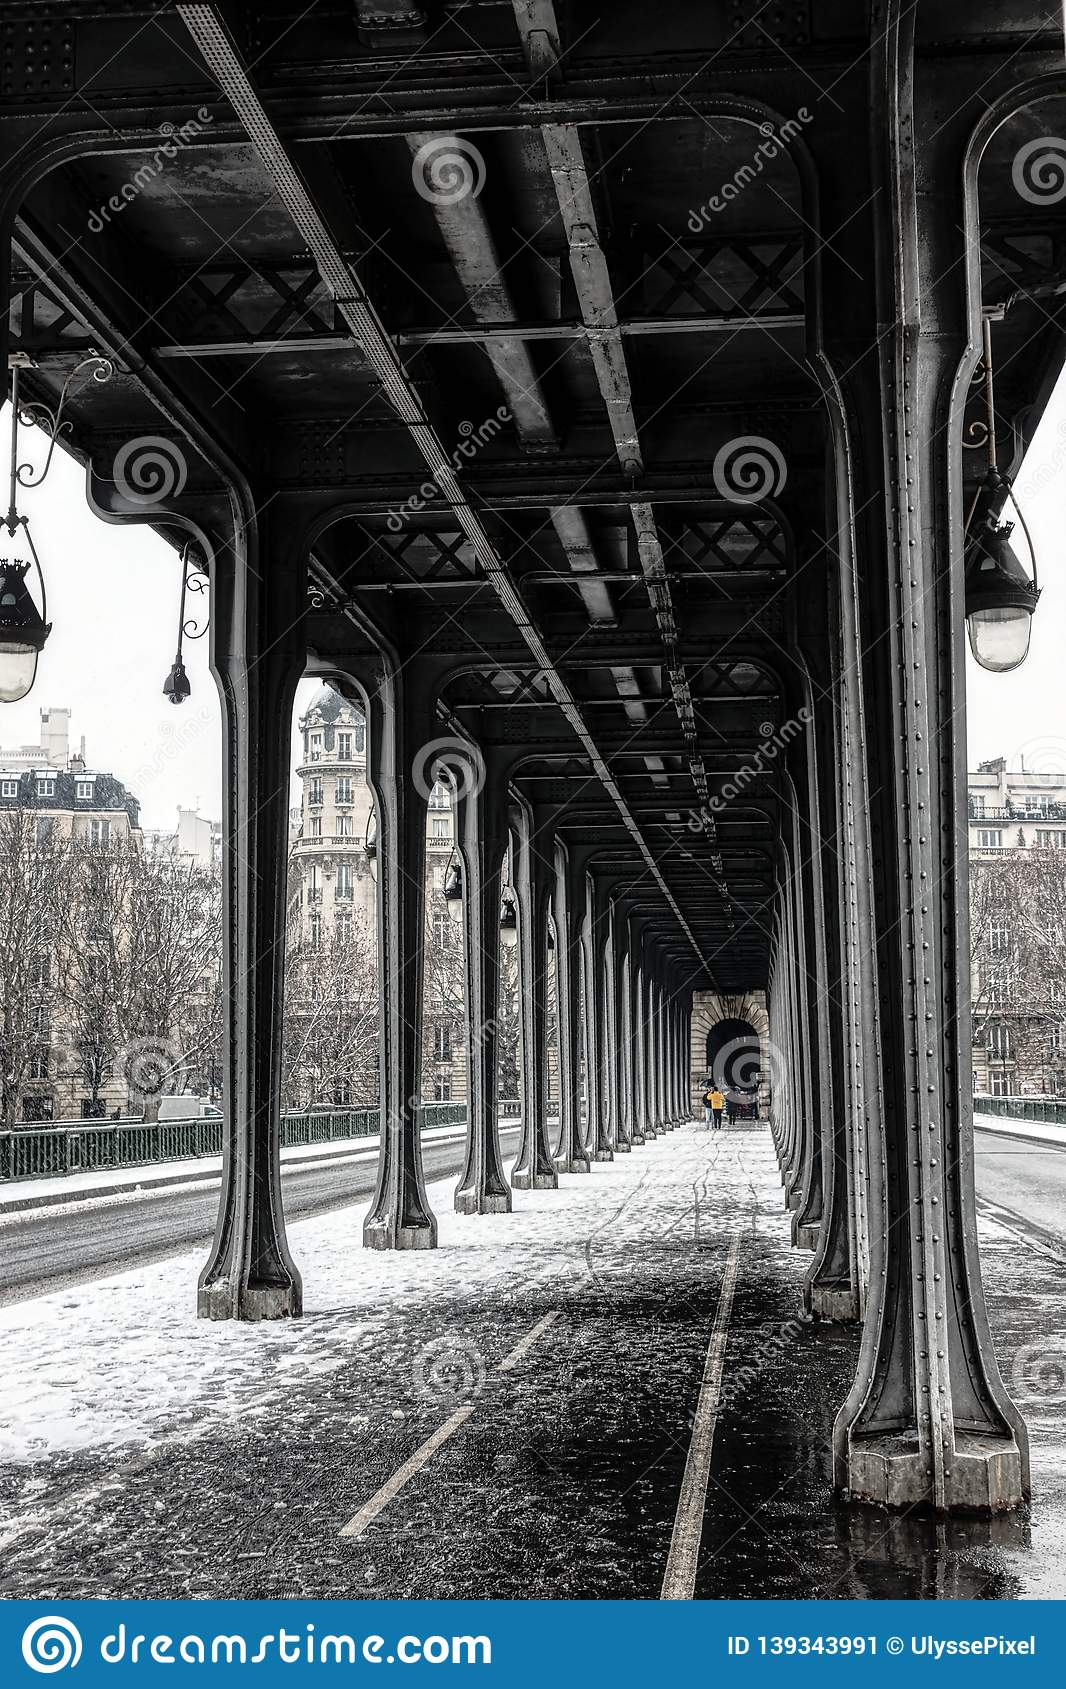 Snowfall over Pont de Bir-Hakeim - Paris, France